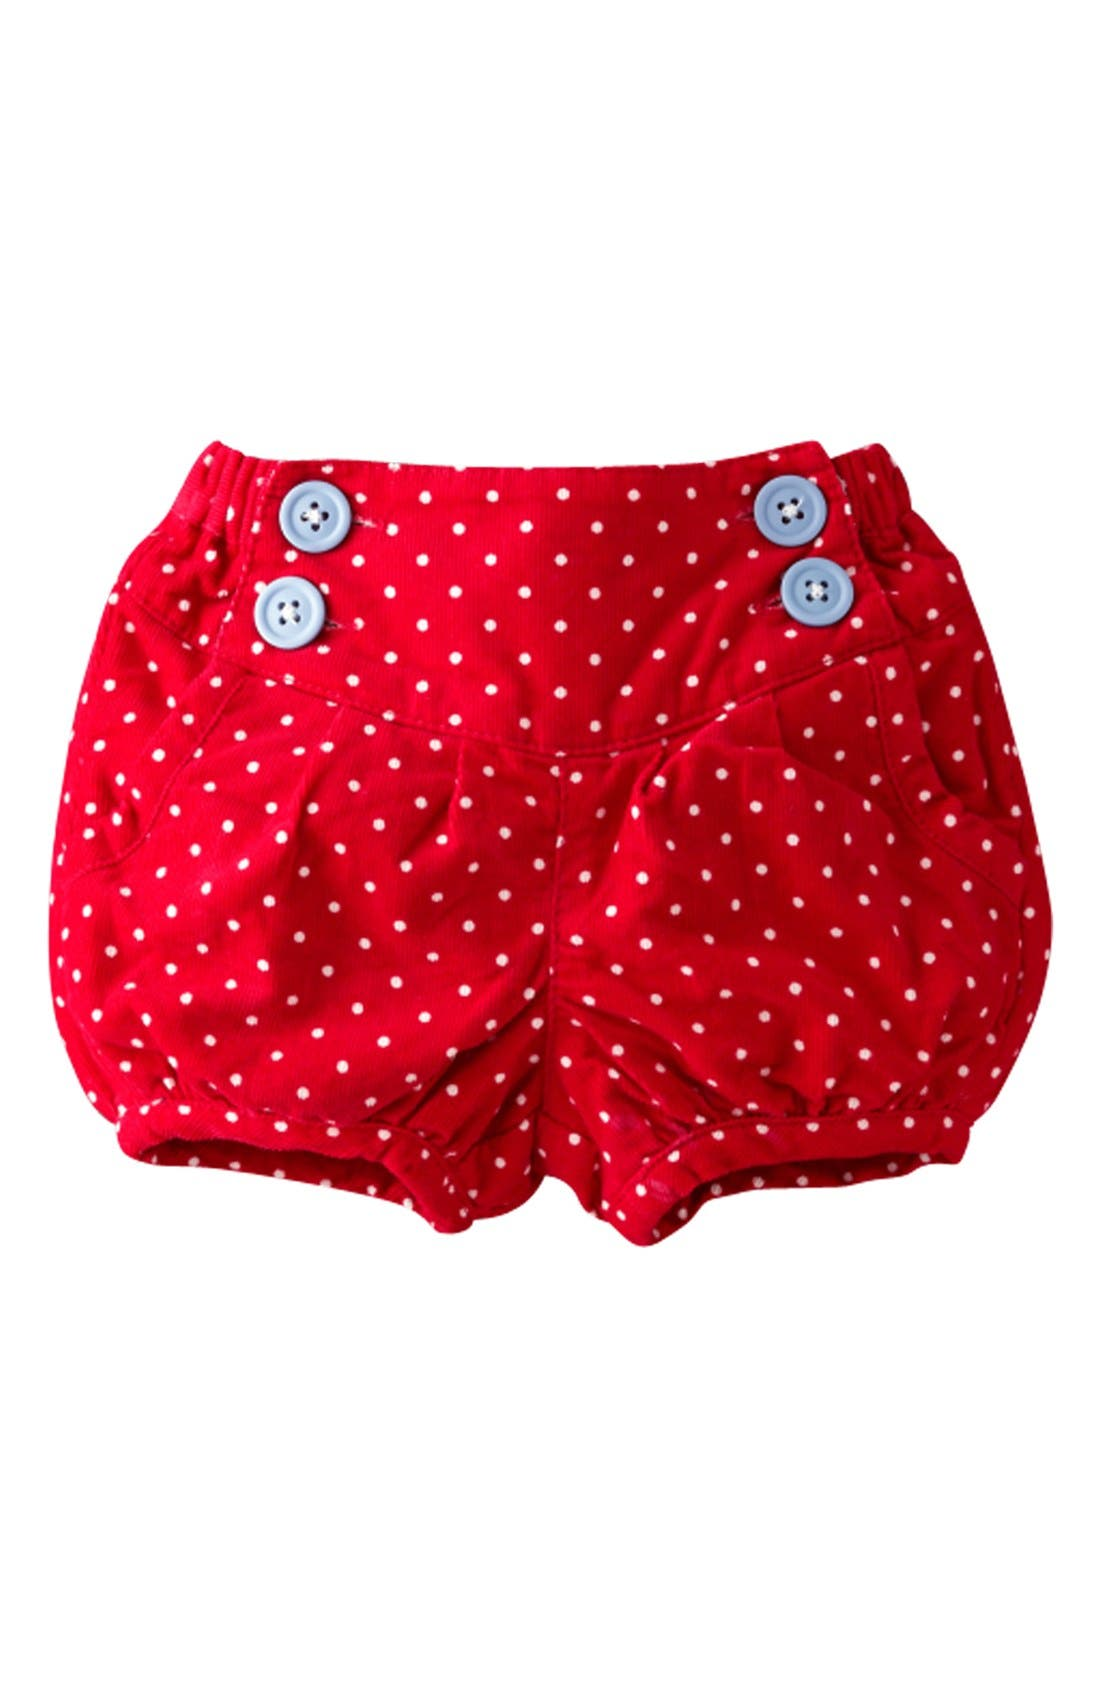 Alternate Image 1 Selected - Mini Boden 'Babycord' Bloomers (Baby Girls)